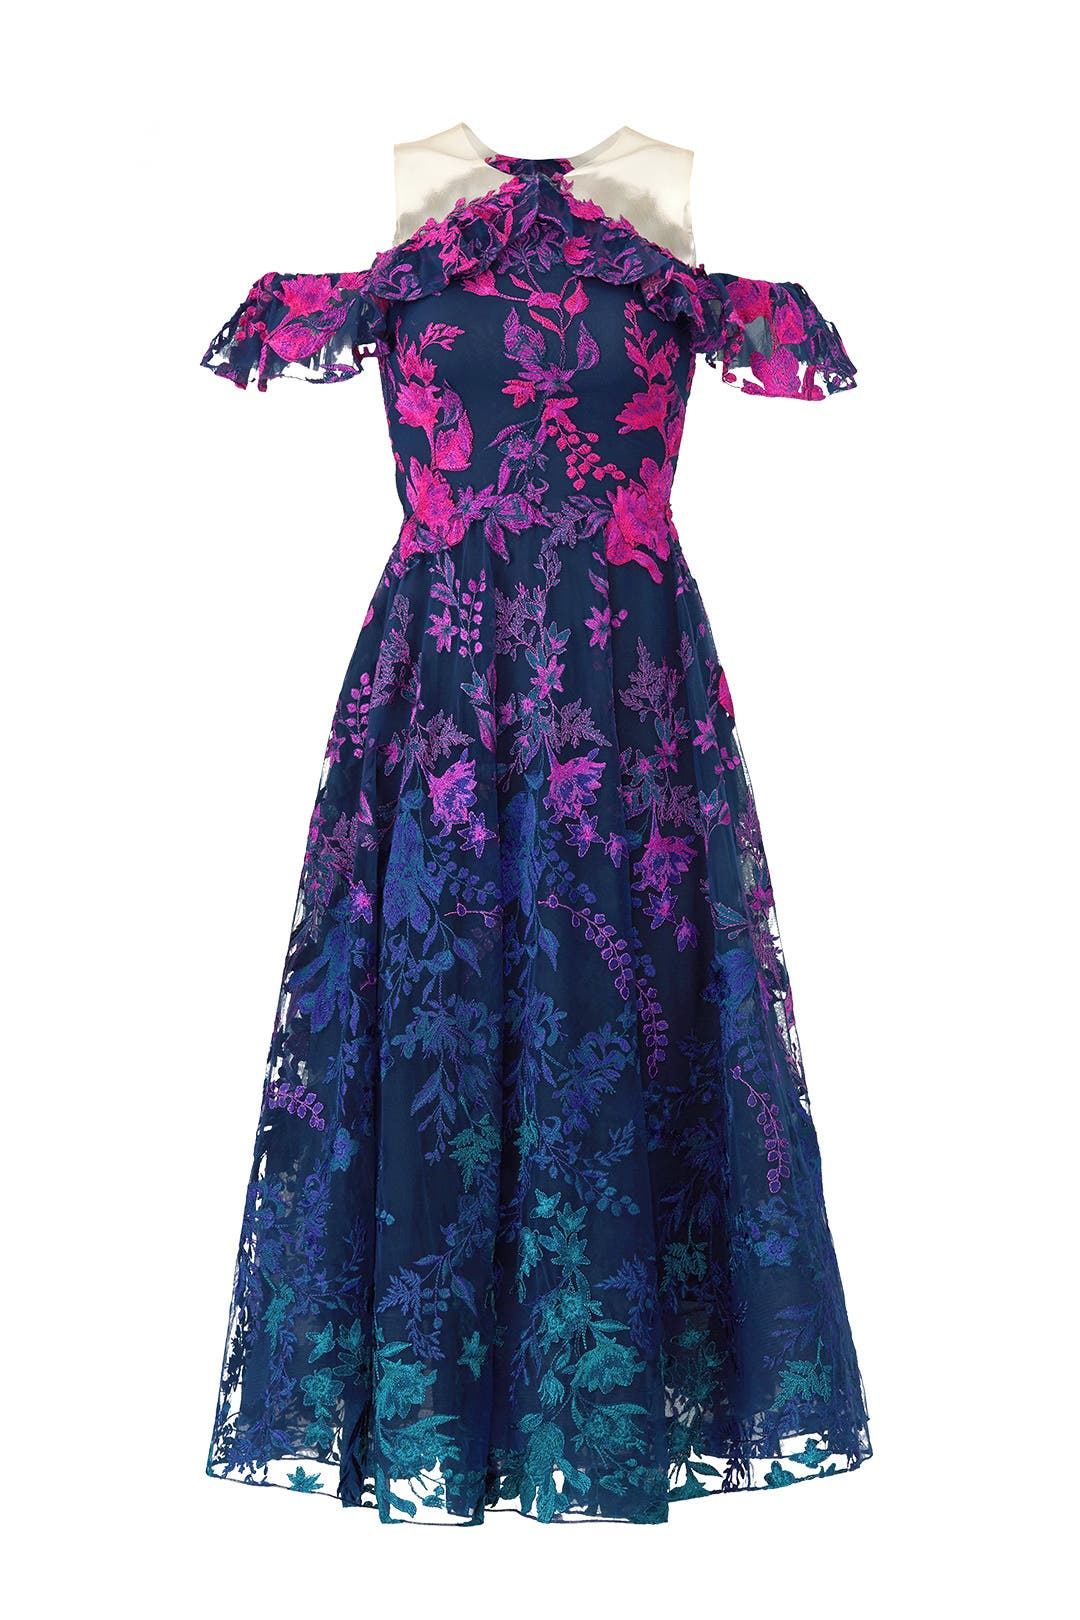 Ombre Floral Dress by Marchesa Notte for $100 - $120   Rent the Runway